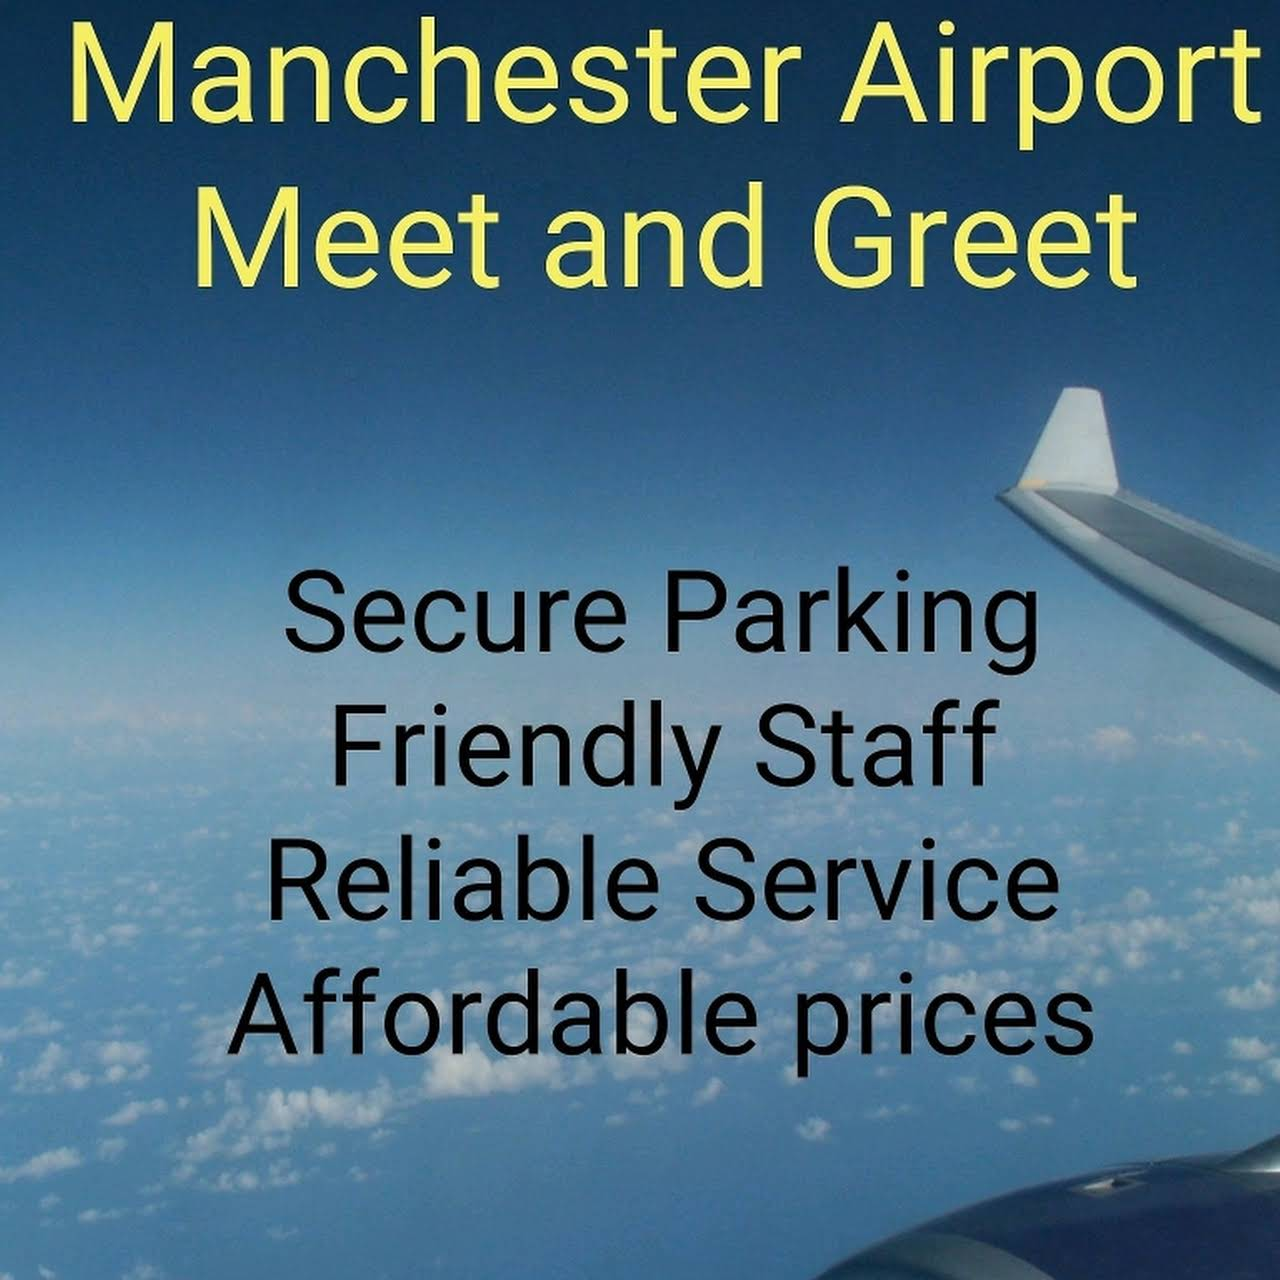 Airport Services Manchester Ltd Manchester Airport Meet And Greet